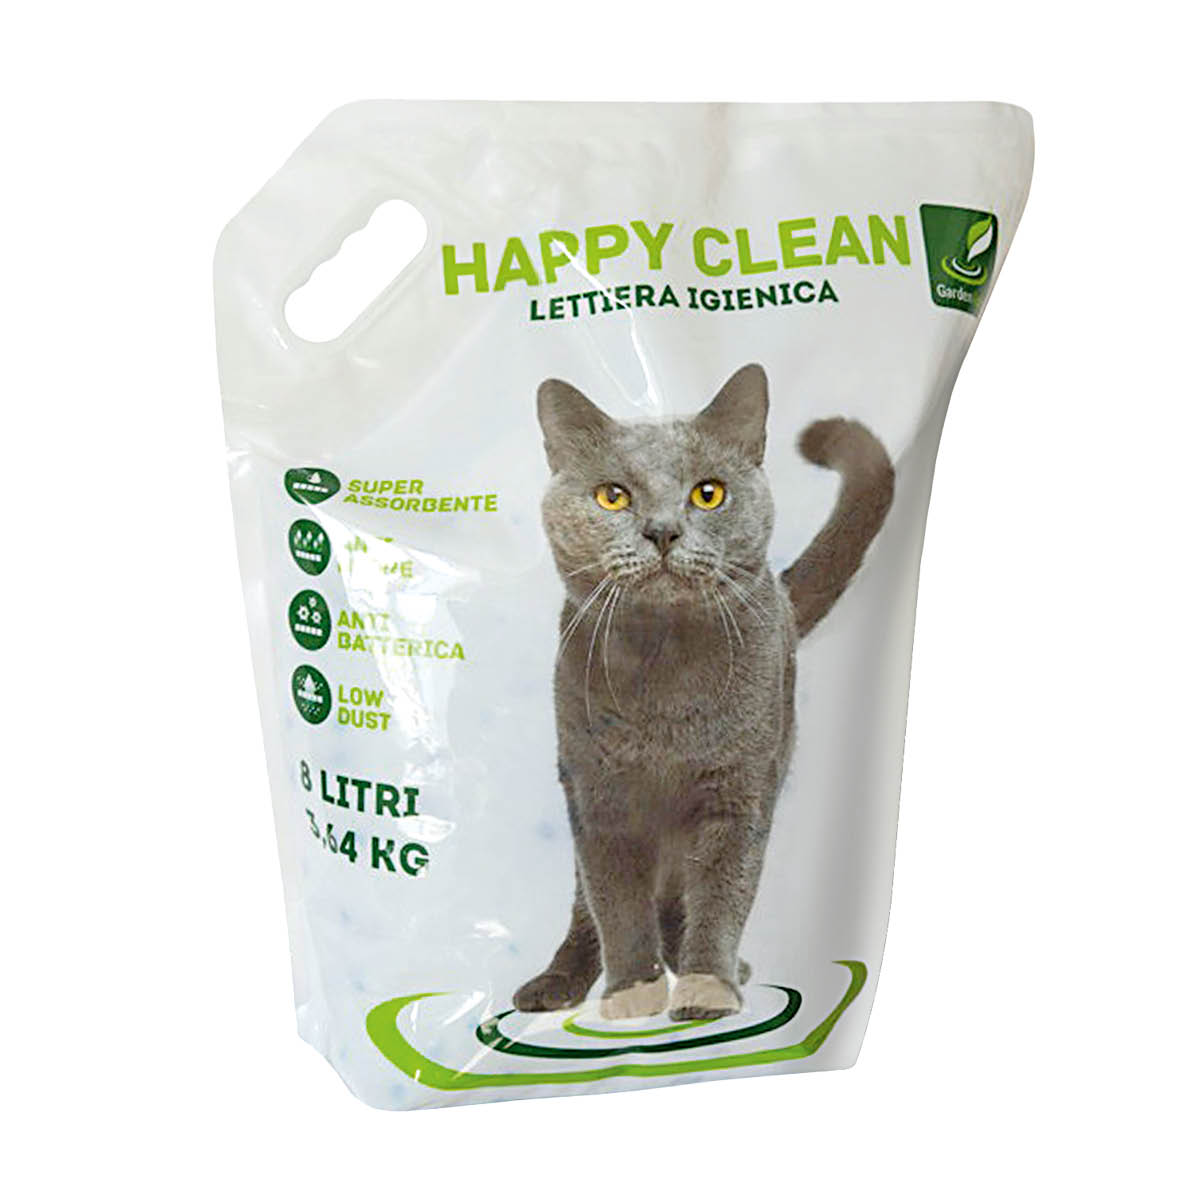 Happy Clean lettiera igienica al silicio 8 litri